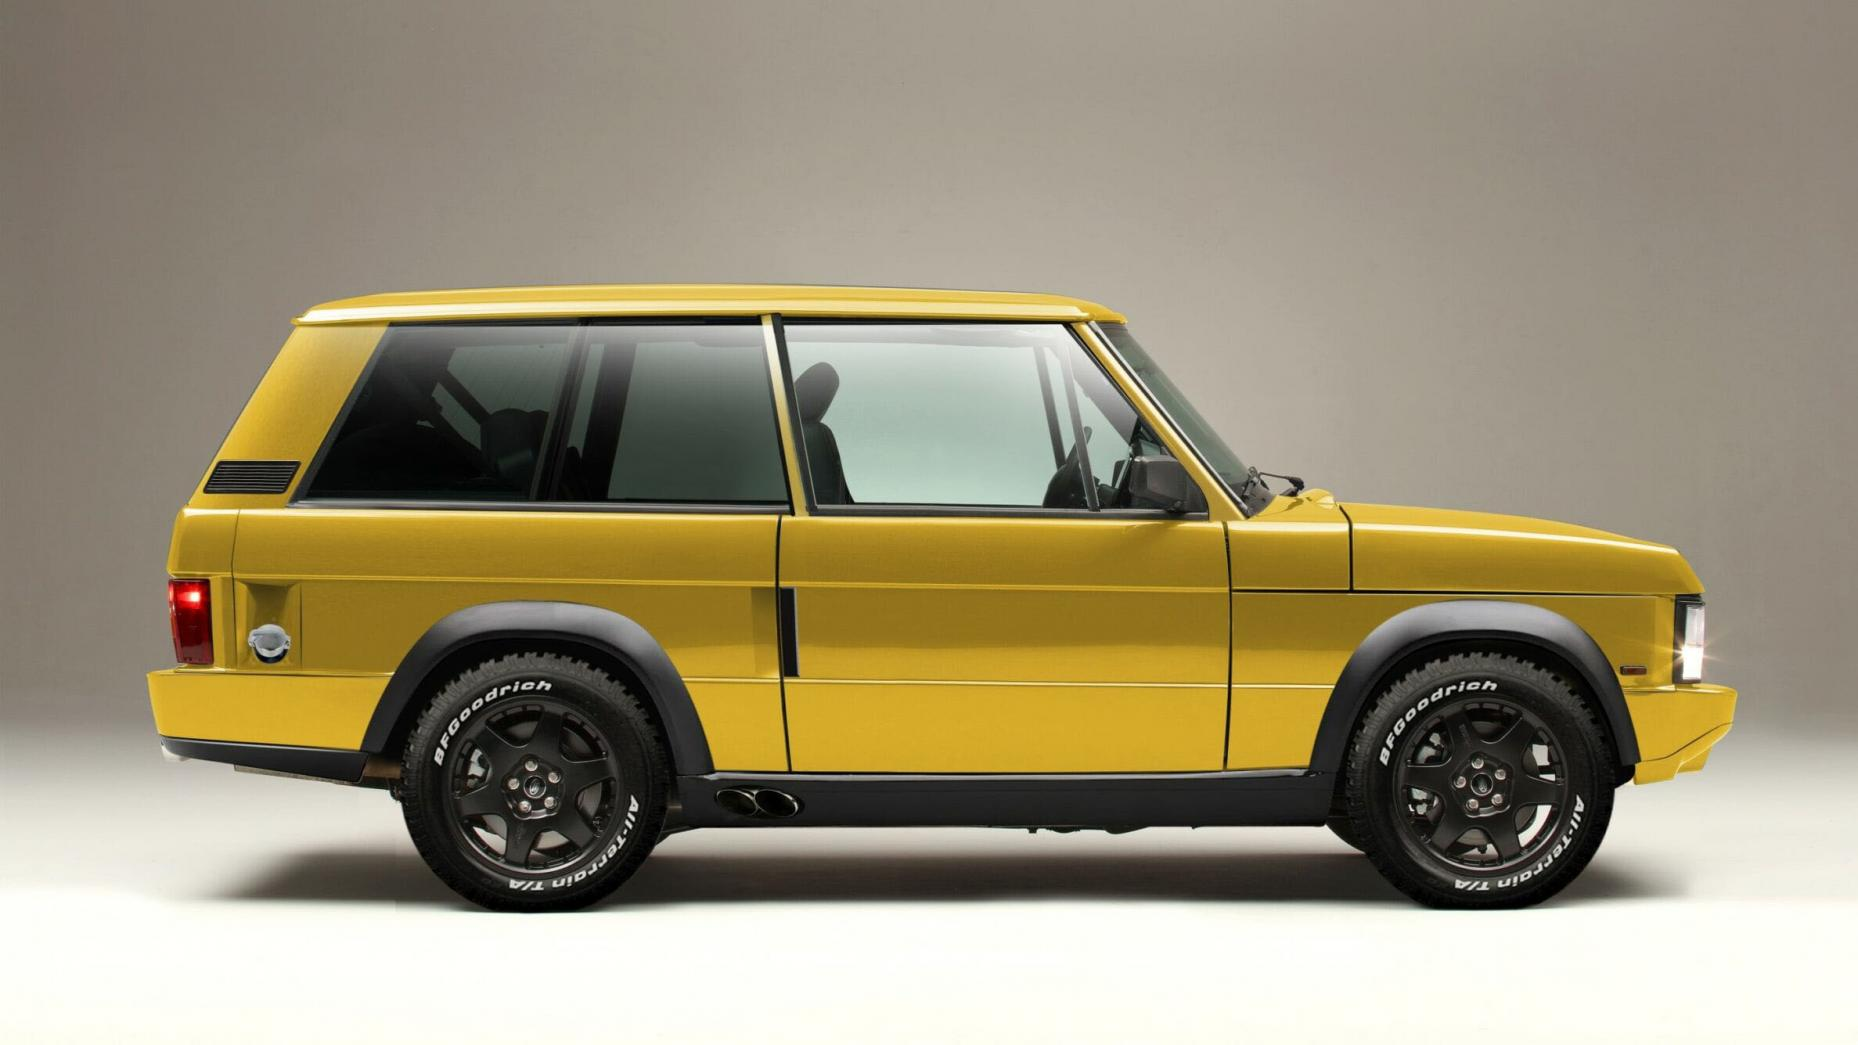 Chieftain Range Rover Extreme